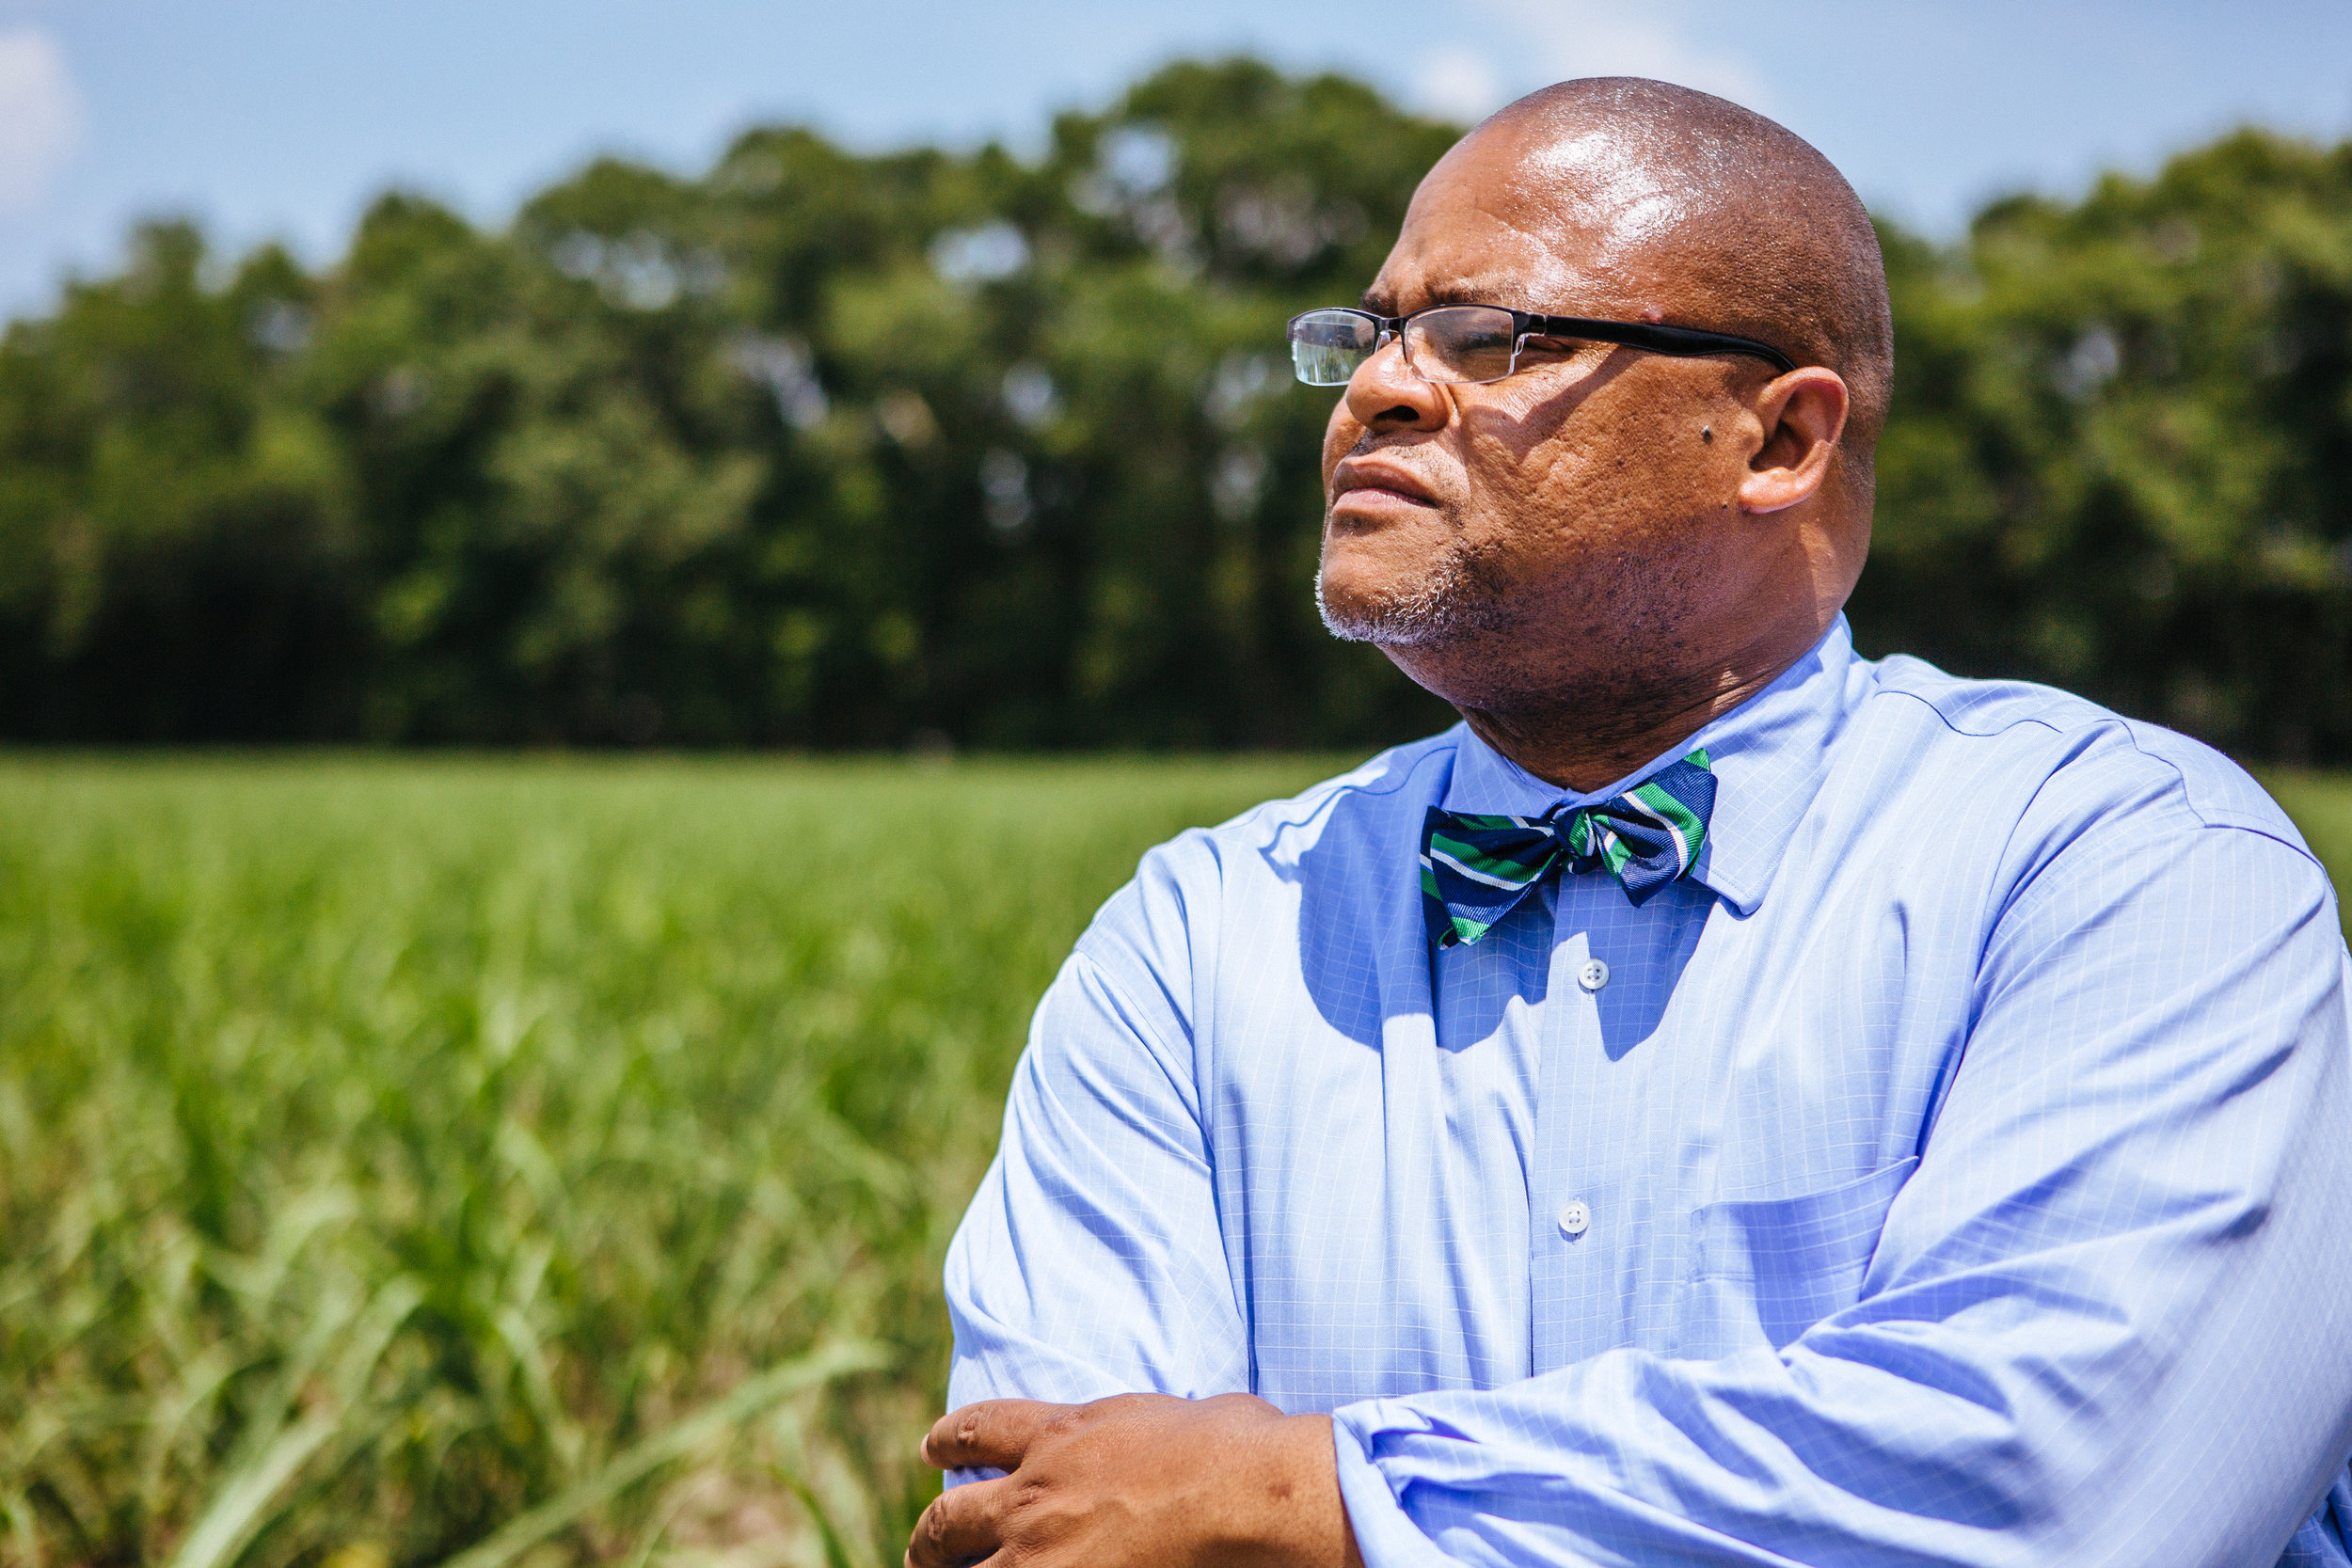 'It's Not Fair, Not Right': How America Treats its Black Farmers